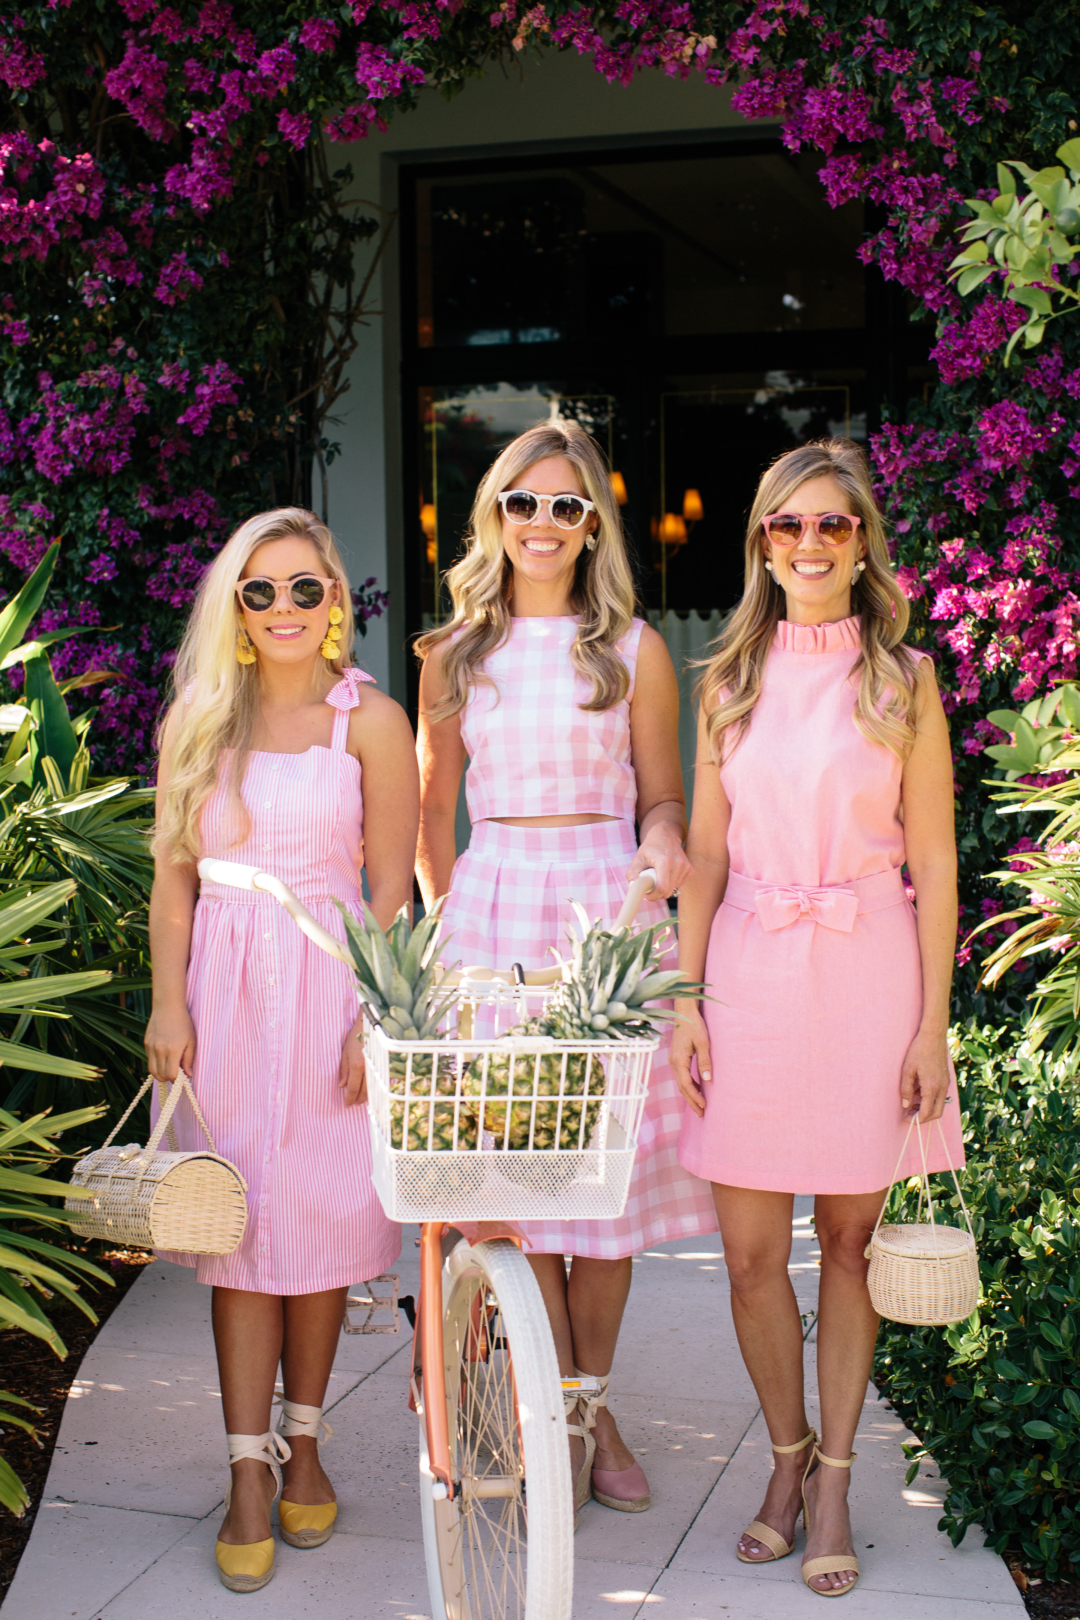 Fashion: Palm Beach Lately and Elizabeth Wilson Designs Clothing Collection